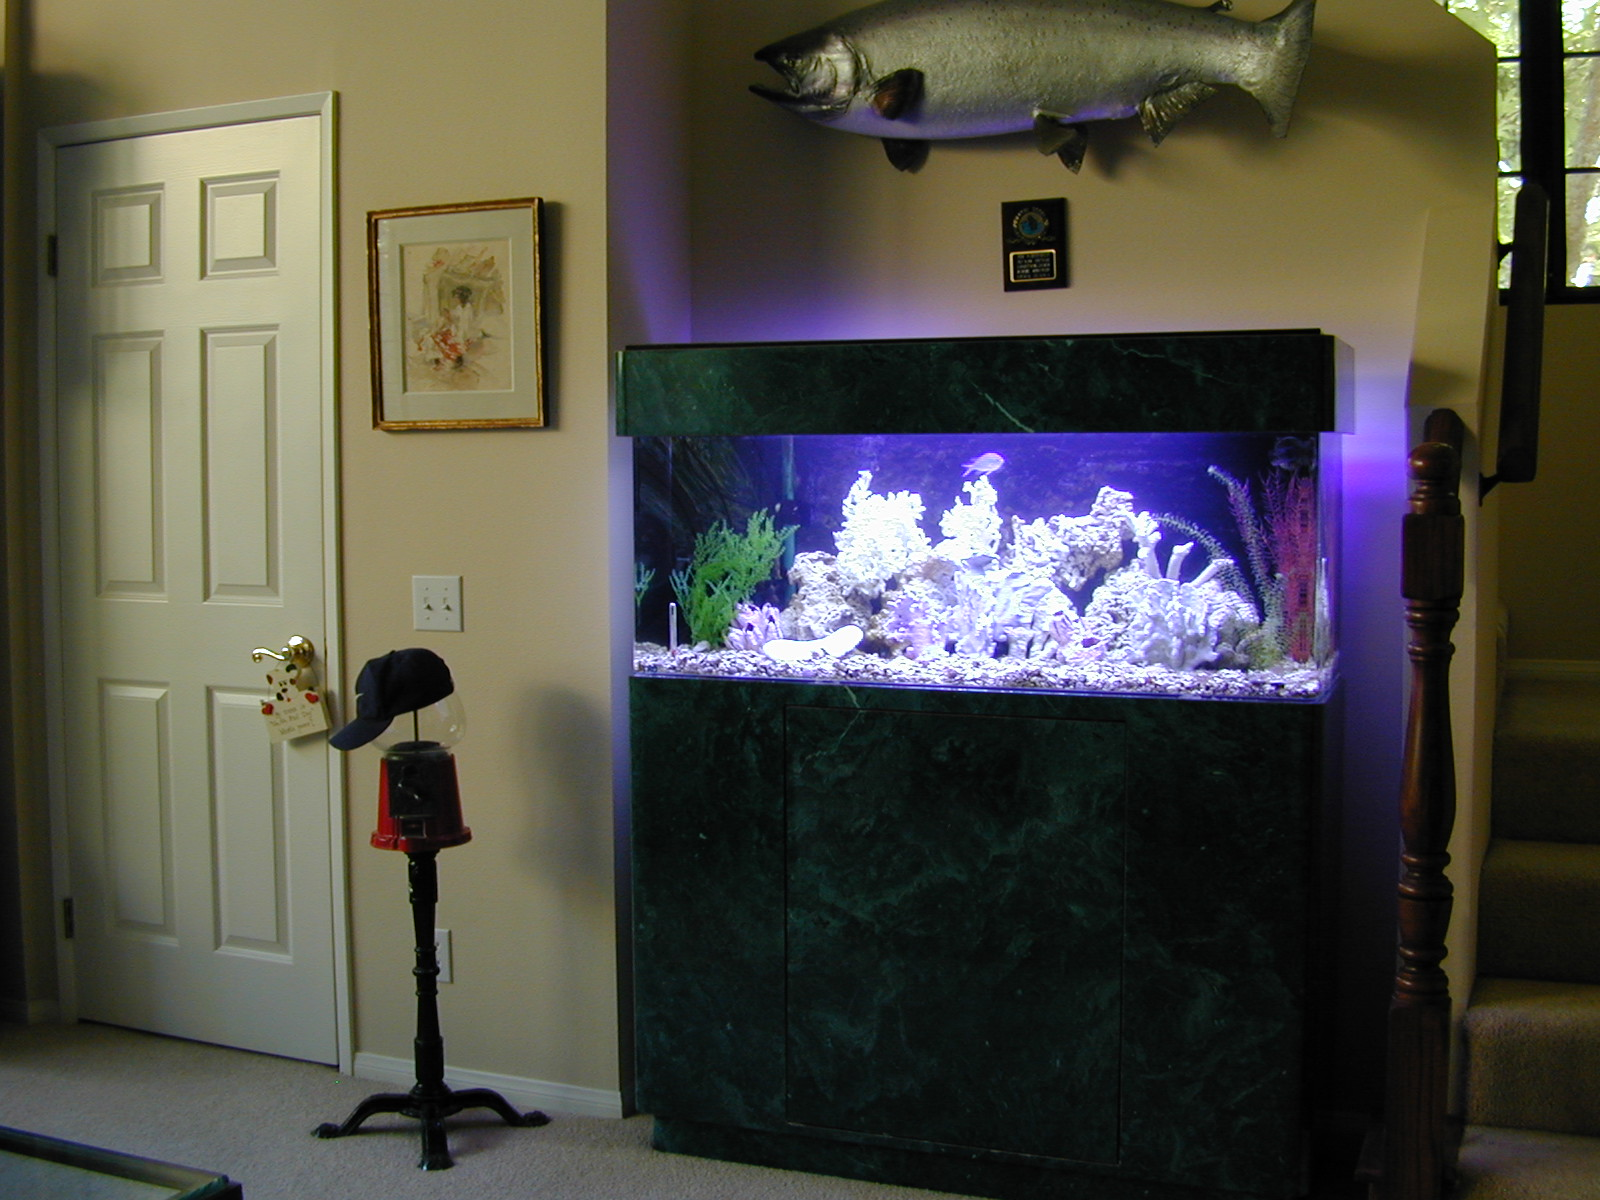 60 Gallon Marine Fish Tank Aquarium Design Marine Aquariums and Coral Reef Aquarium Tank Stand Canopy and Aquarium Filter System & 60 Gallon Marine Fish Tank Aquarium Design Marine Aquariums and ...